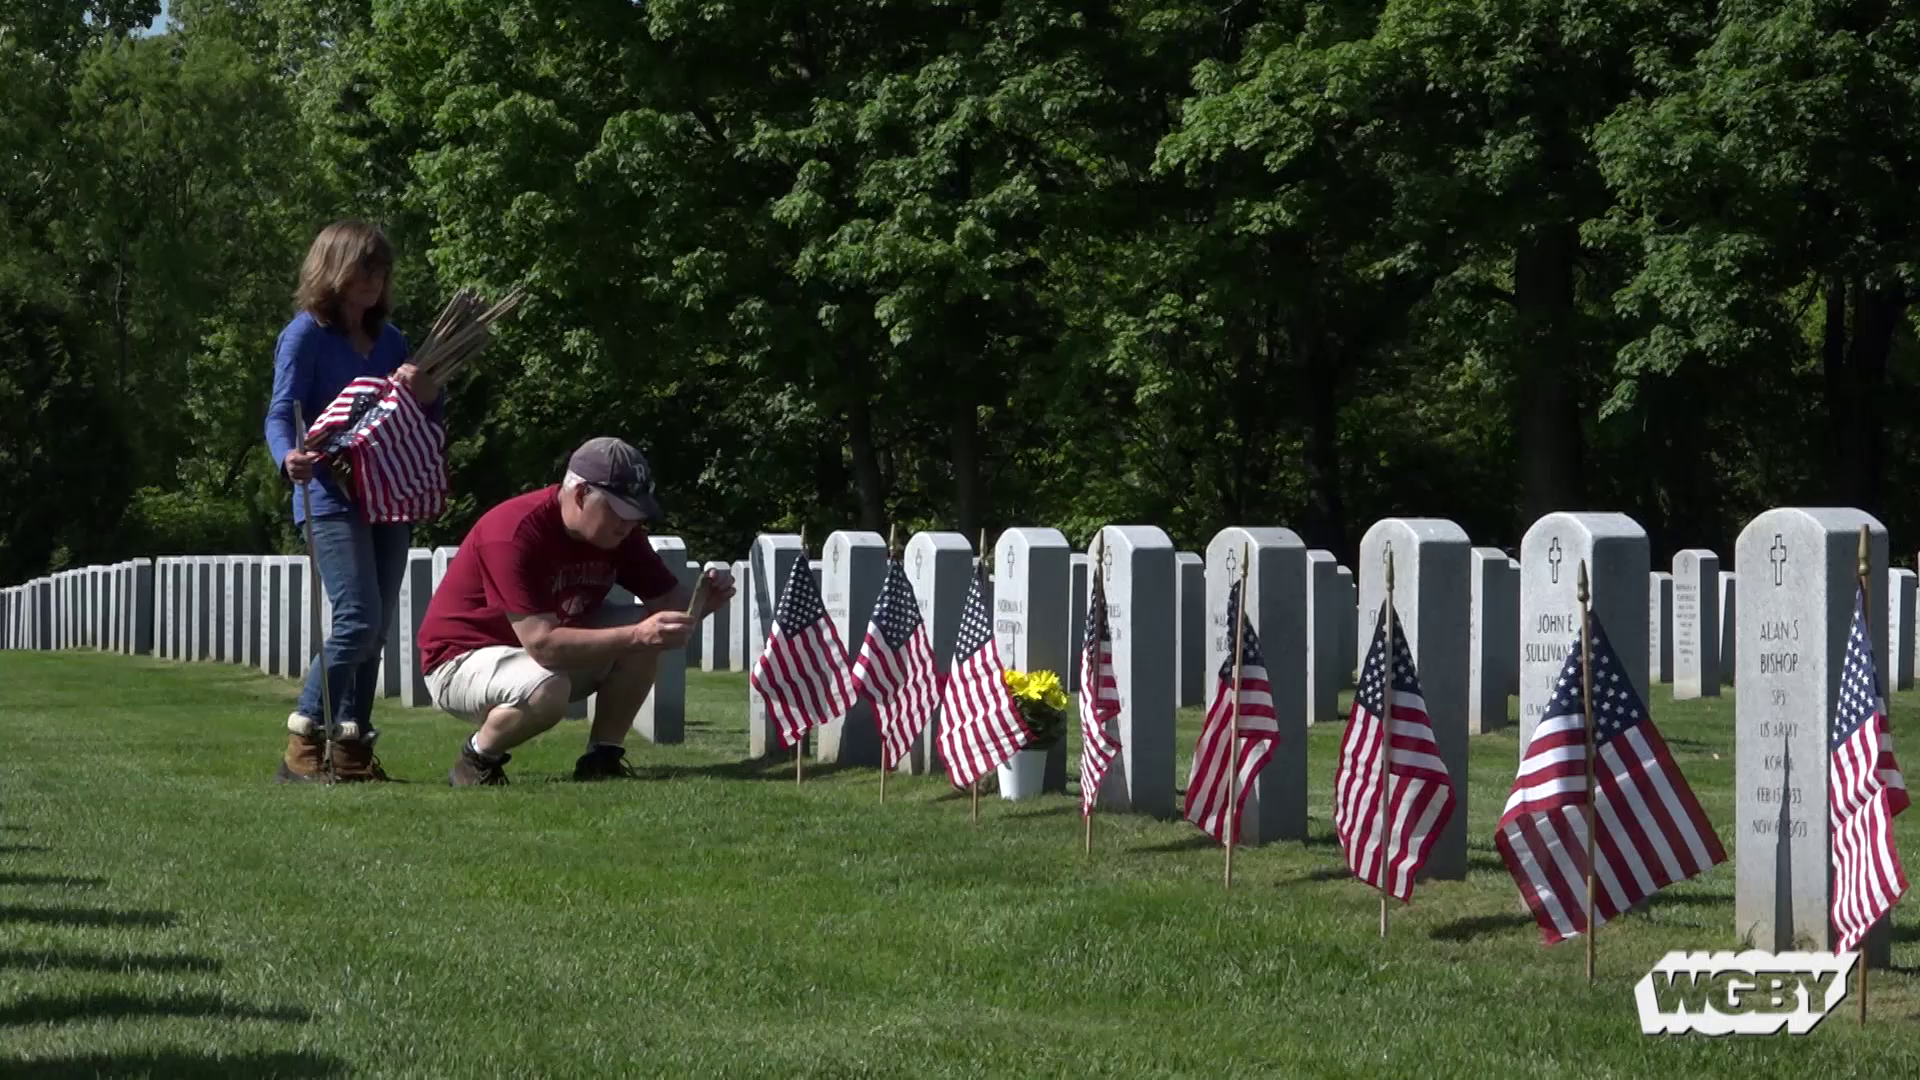 Each year, hundreds of volunteers gather on the Wednesday before Memorial Day to participate in Flag Decoration Day at the Veterans Memorial Cemetery in Agawam. Producer Dave Fraser joined the volunteers as adorned over 9,000 grave markers with an American flag.